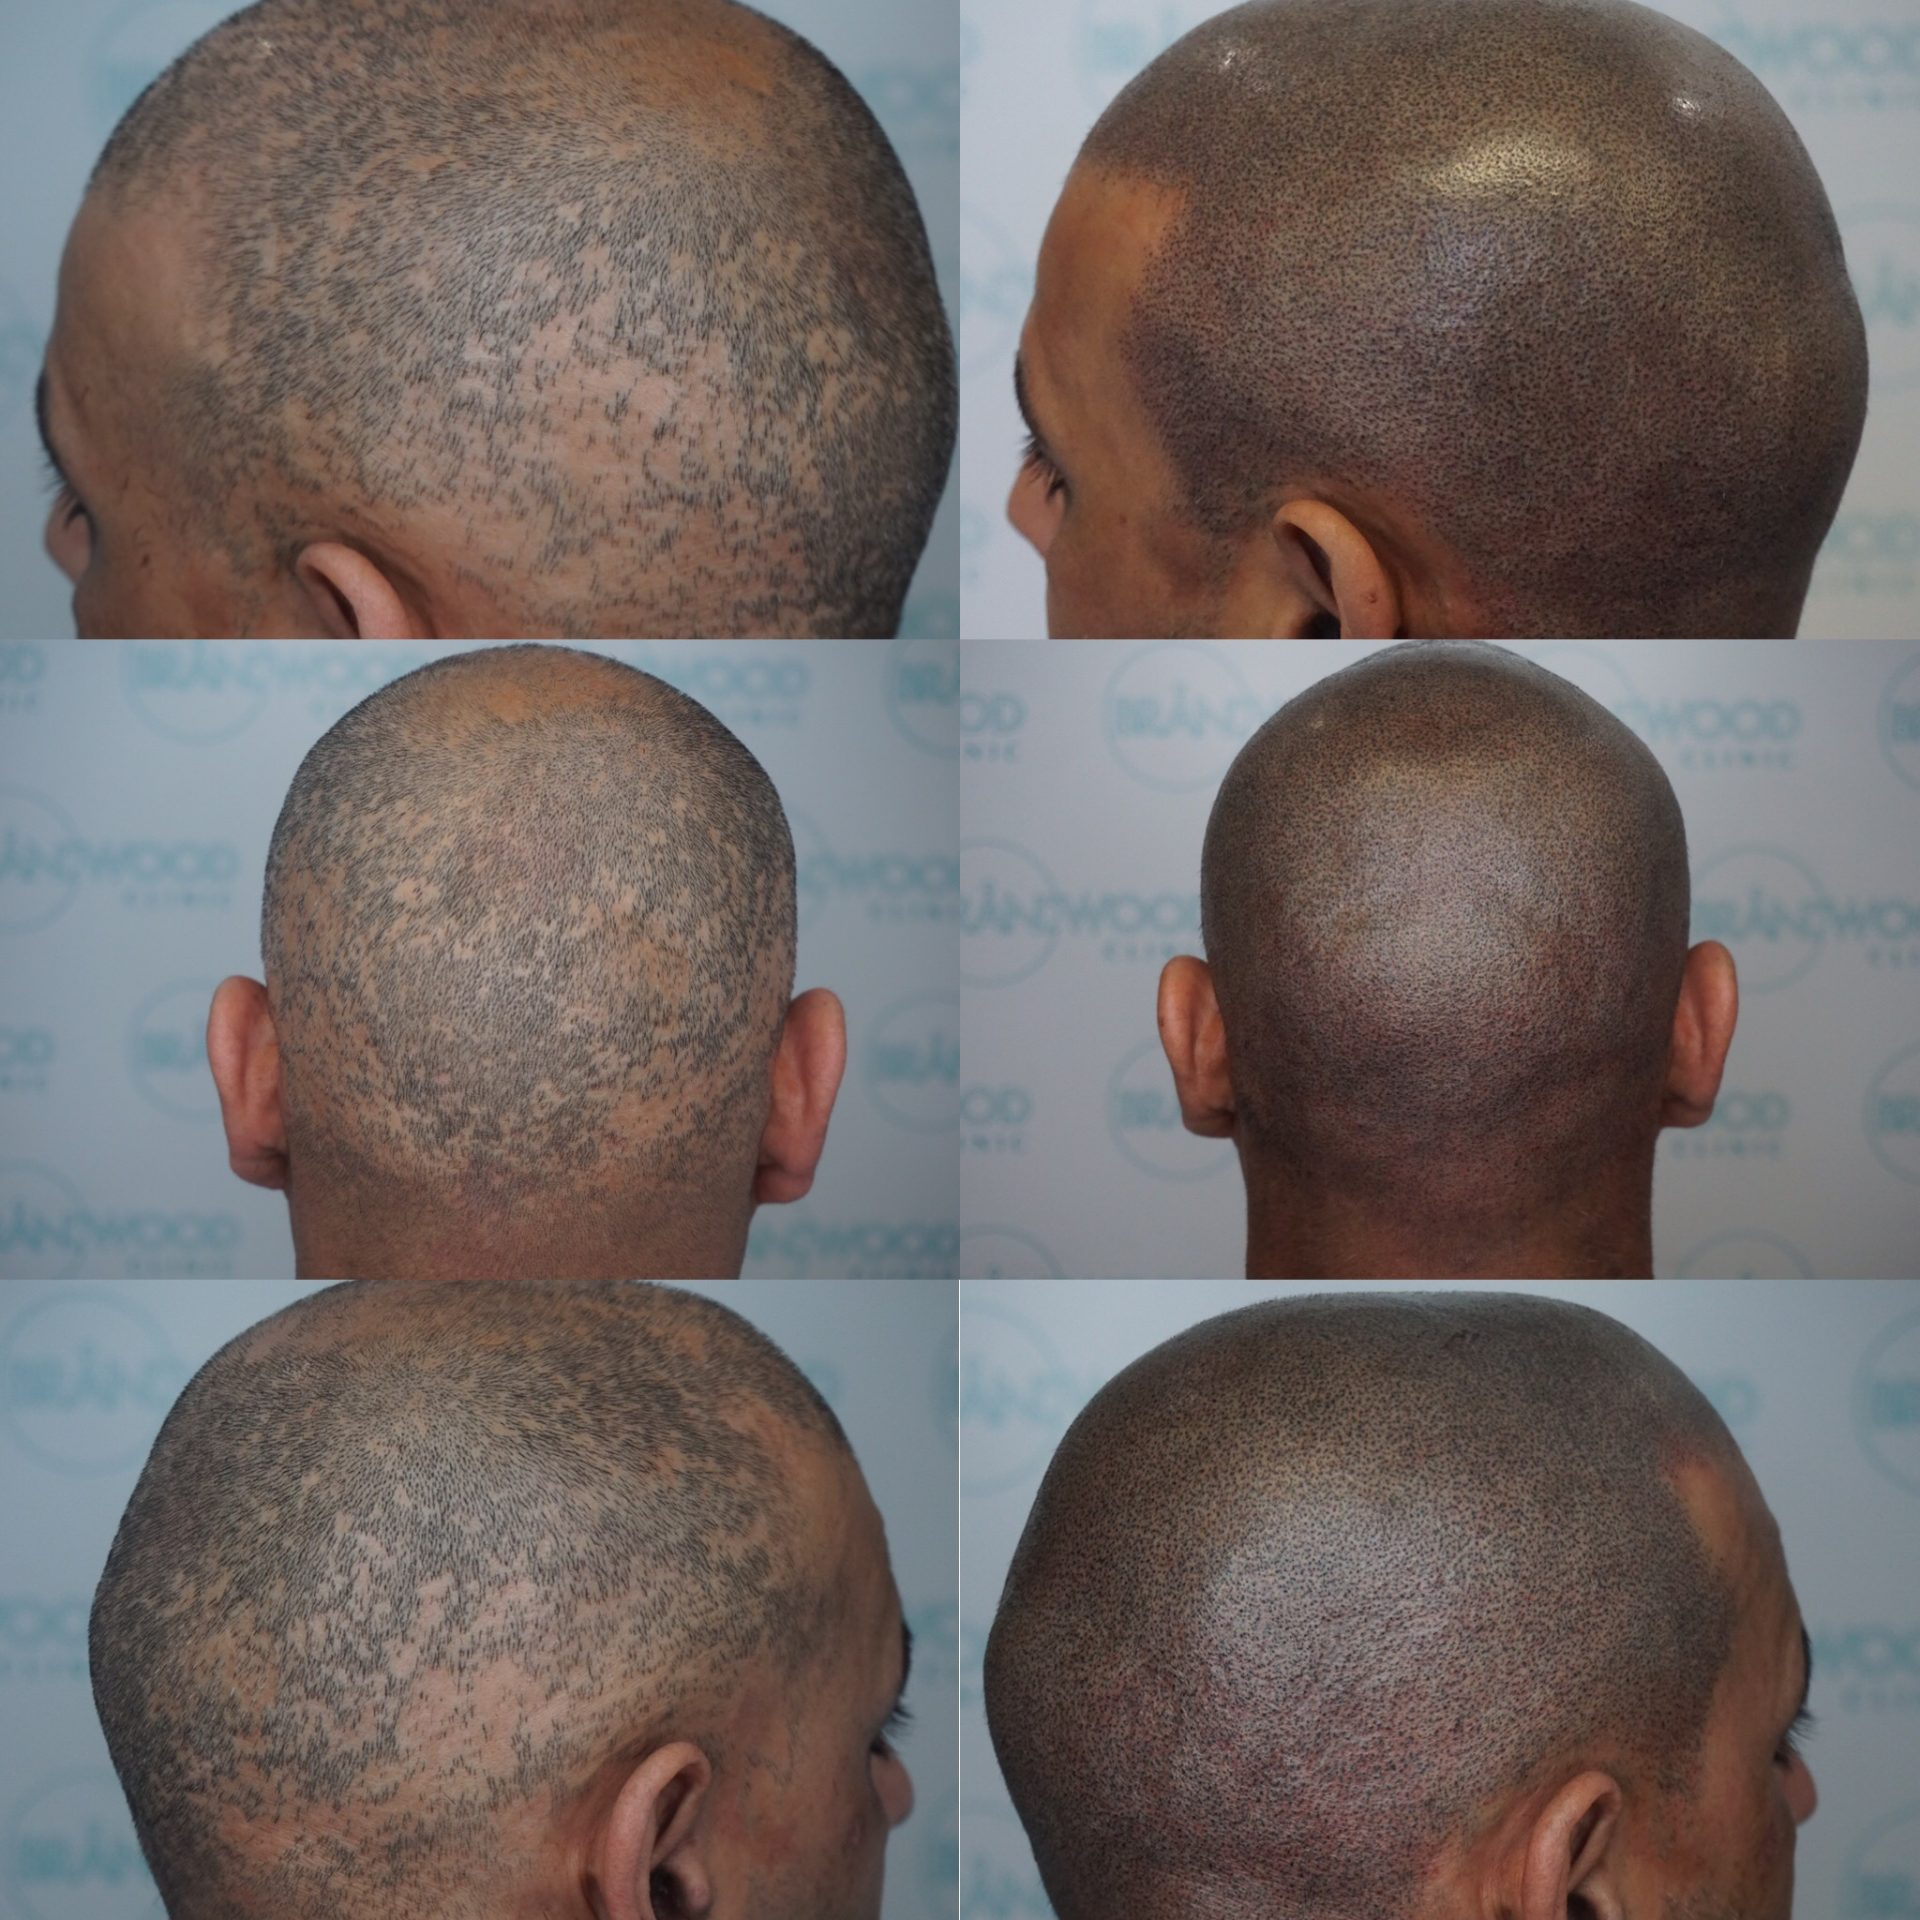 scarring alopecia pre and post SMP